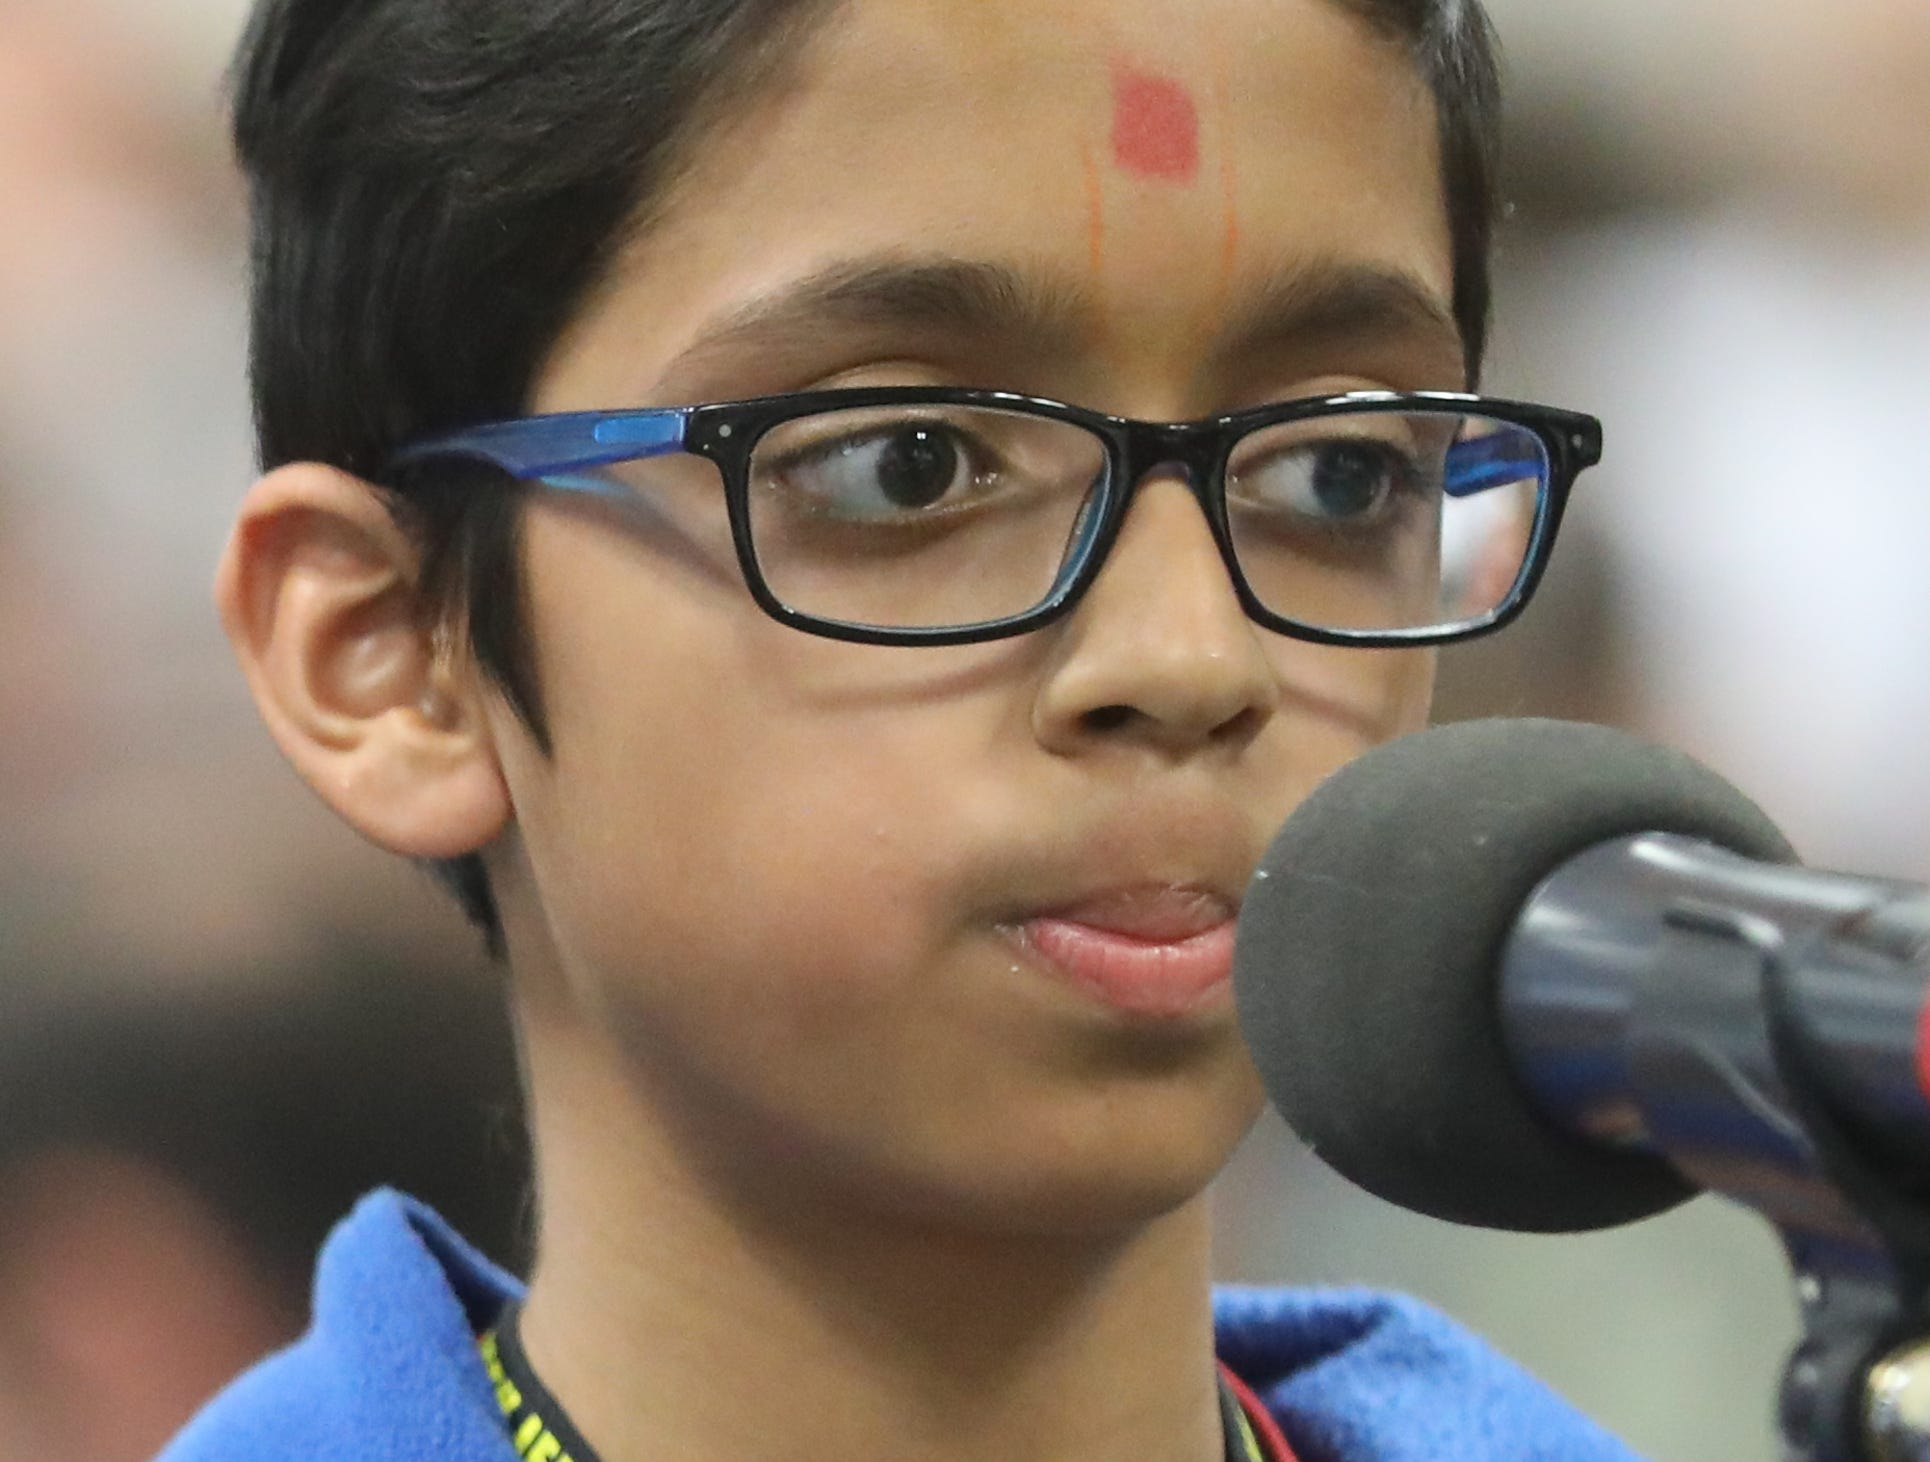 Kirtan Mangrolia, of Wallington, competes in the first round of the 2019 North Jersey Spelling Bee, in Paramus. Thursday, March 14, 2019